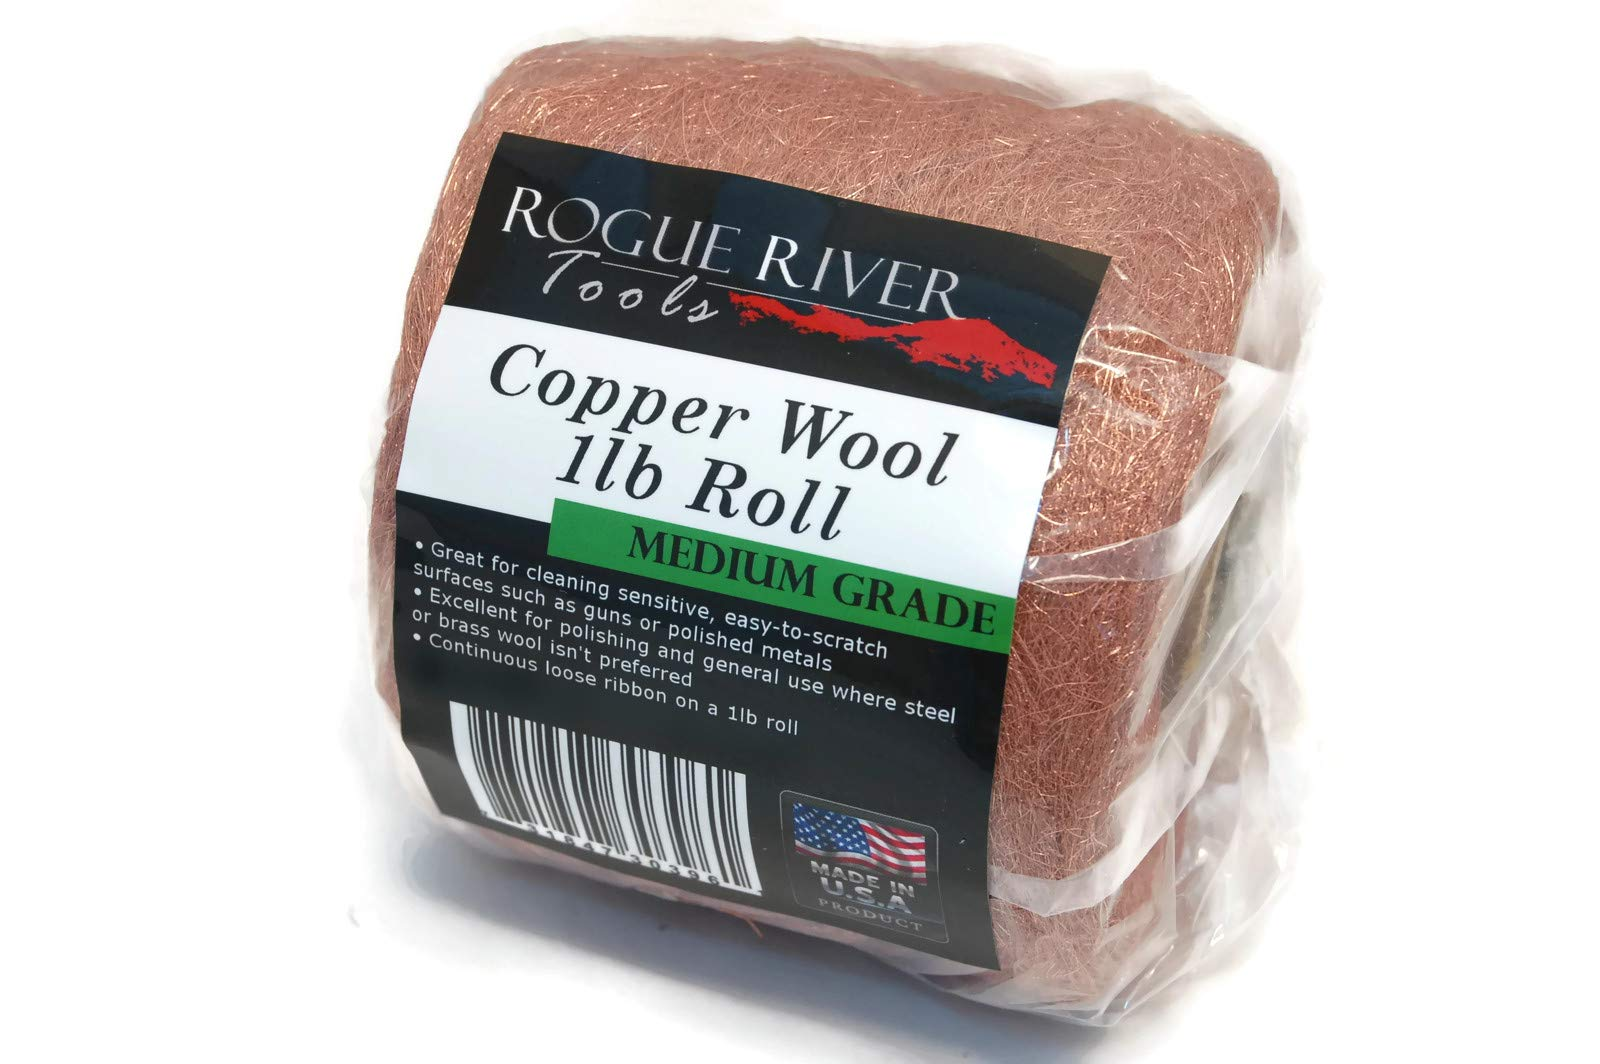 Copper Wool 1lb Roll (Medium Grade) - Made in USA! by Rogue River Tools